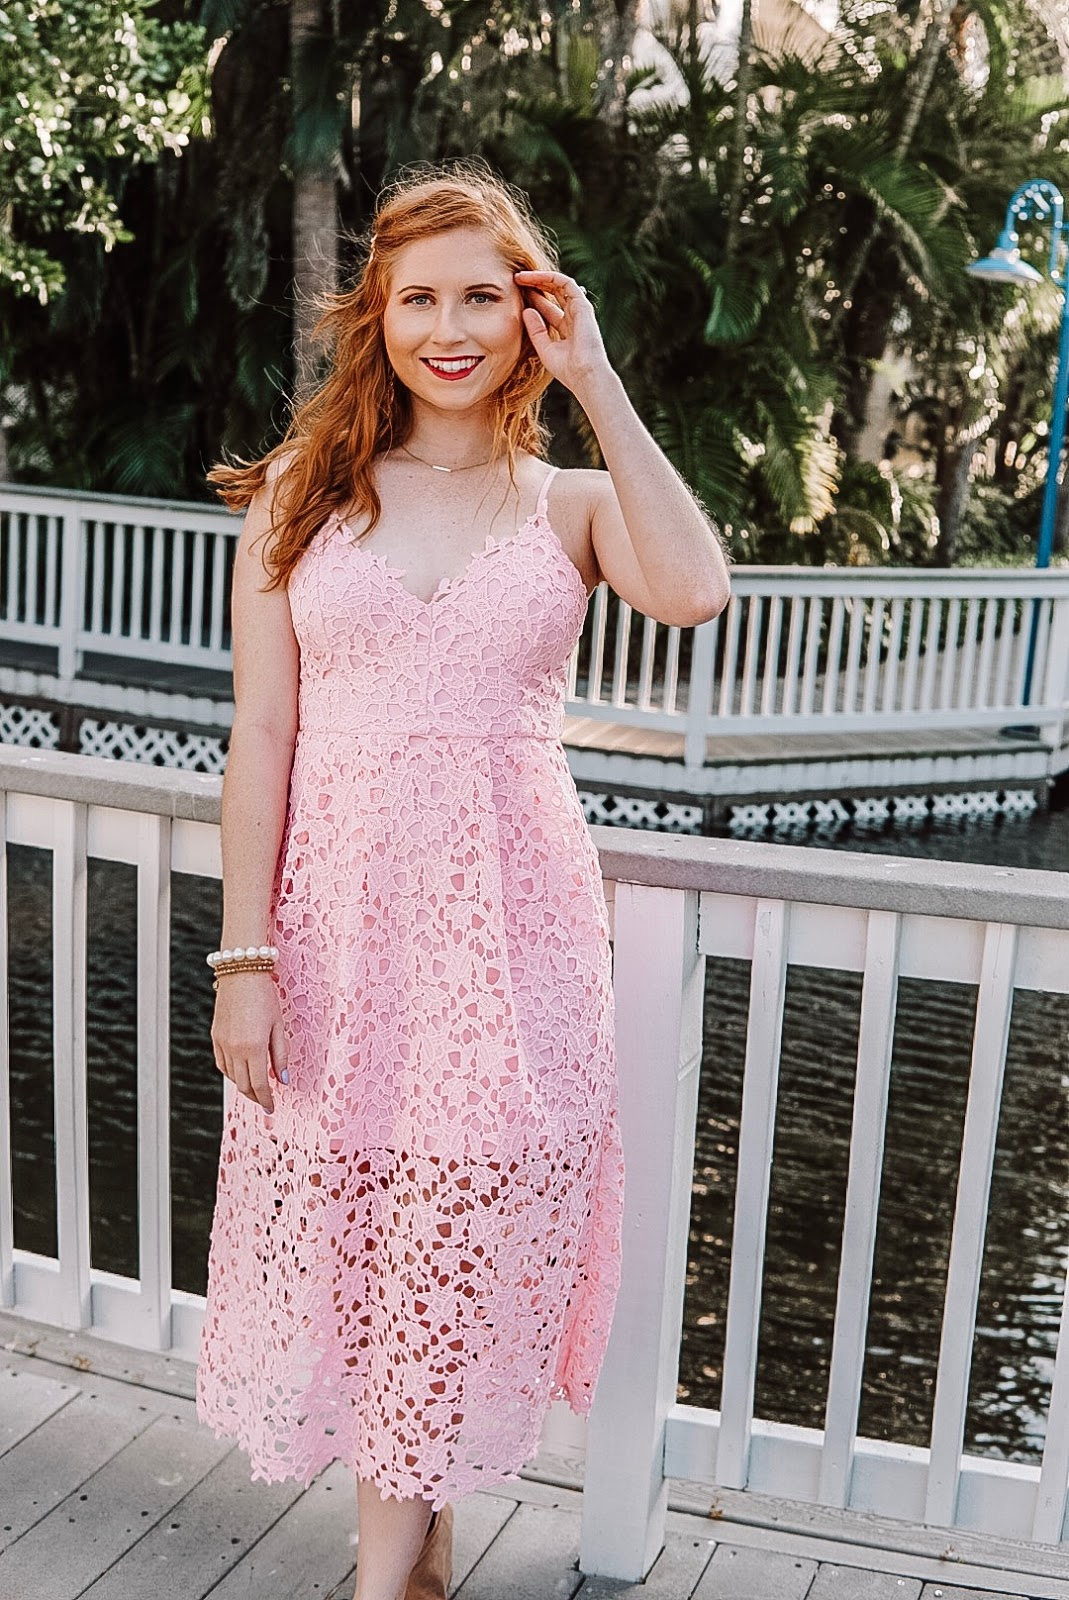 affordable by amanda blogger amanda burrows is wearing a rose astr the label lace midi dress from nordstrom for under $100